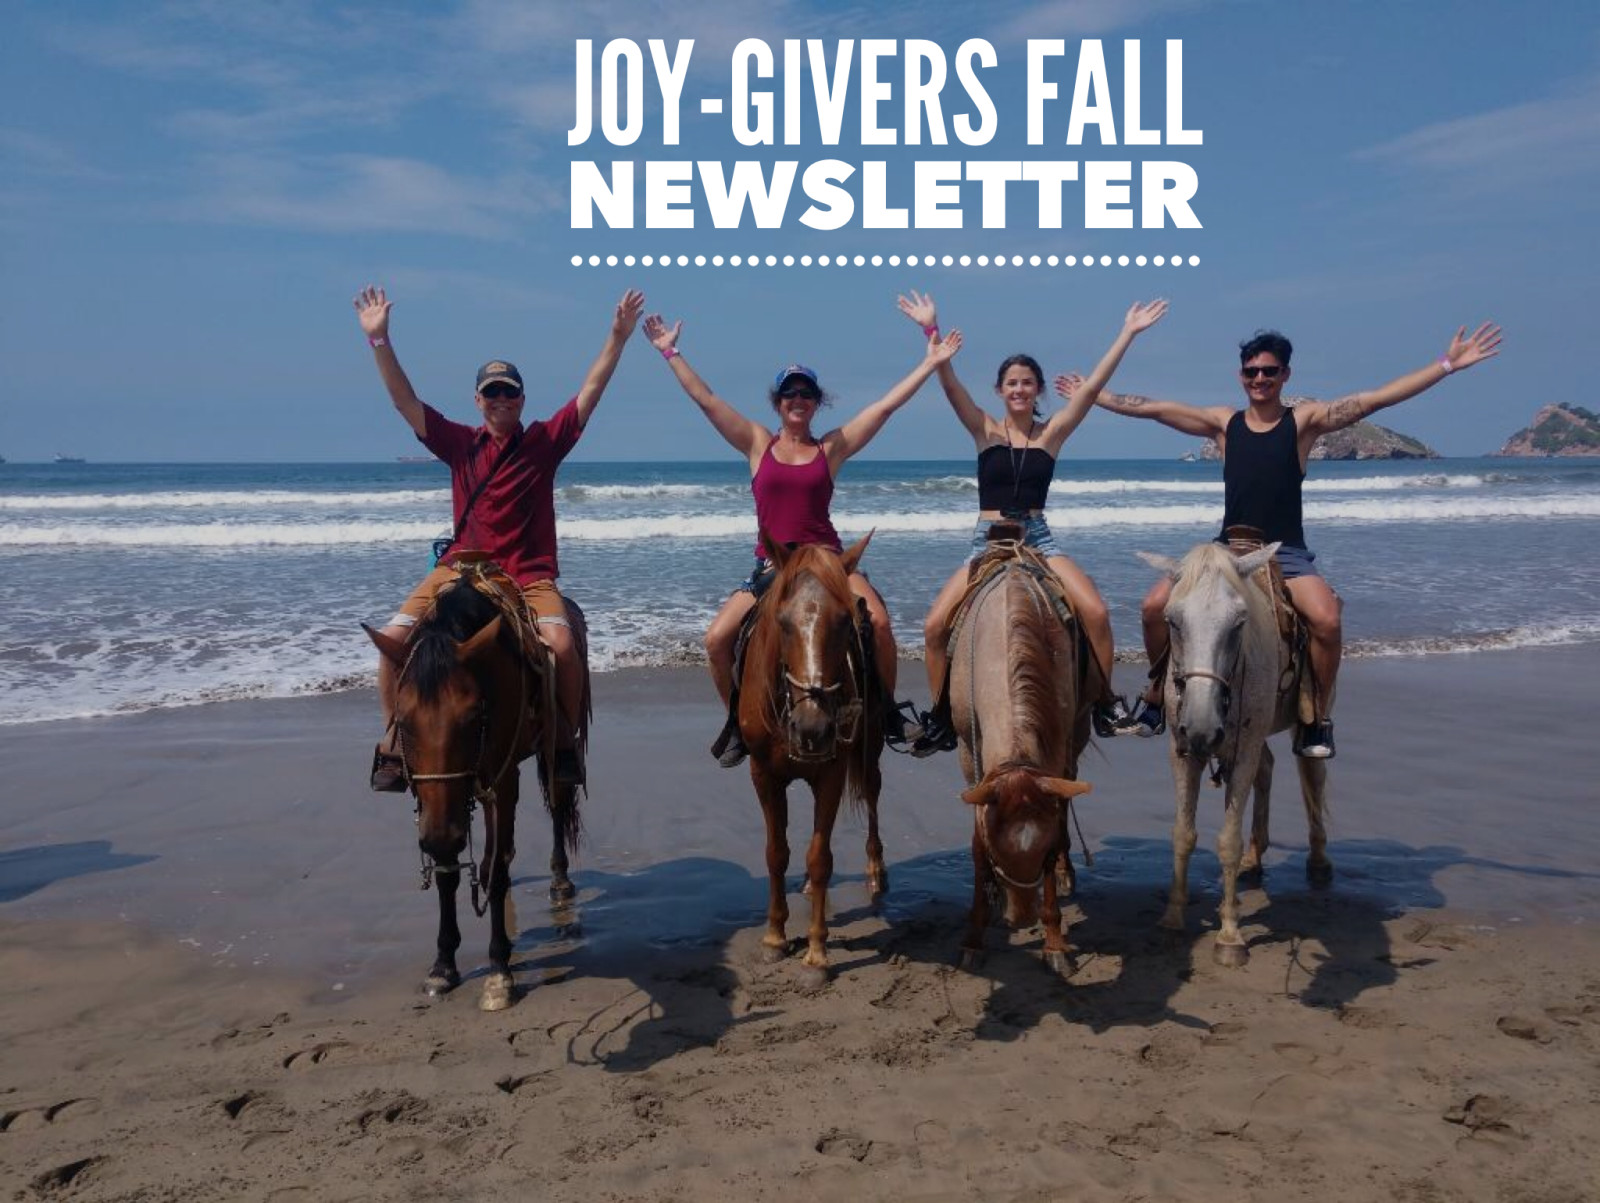 Joy-Givers Fall Newsletter